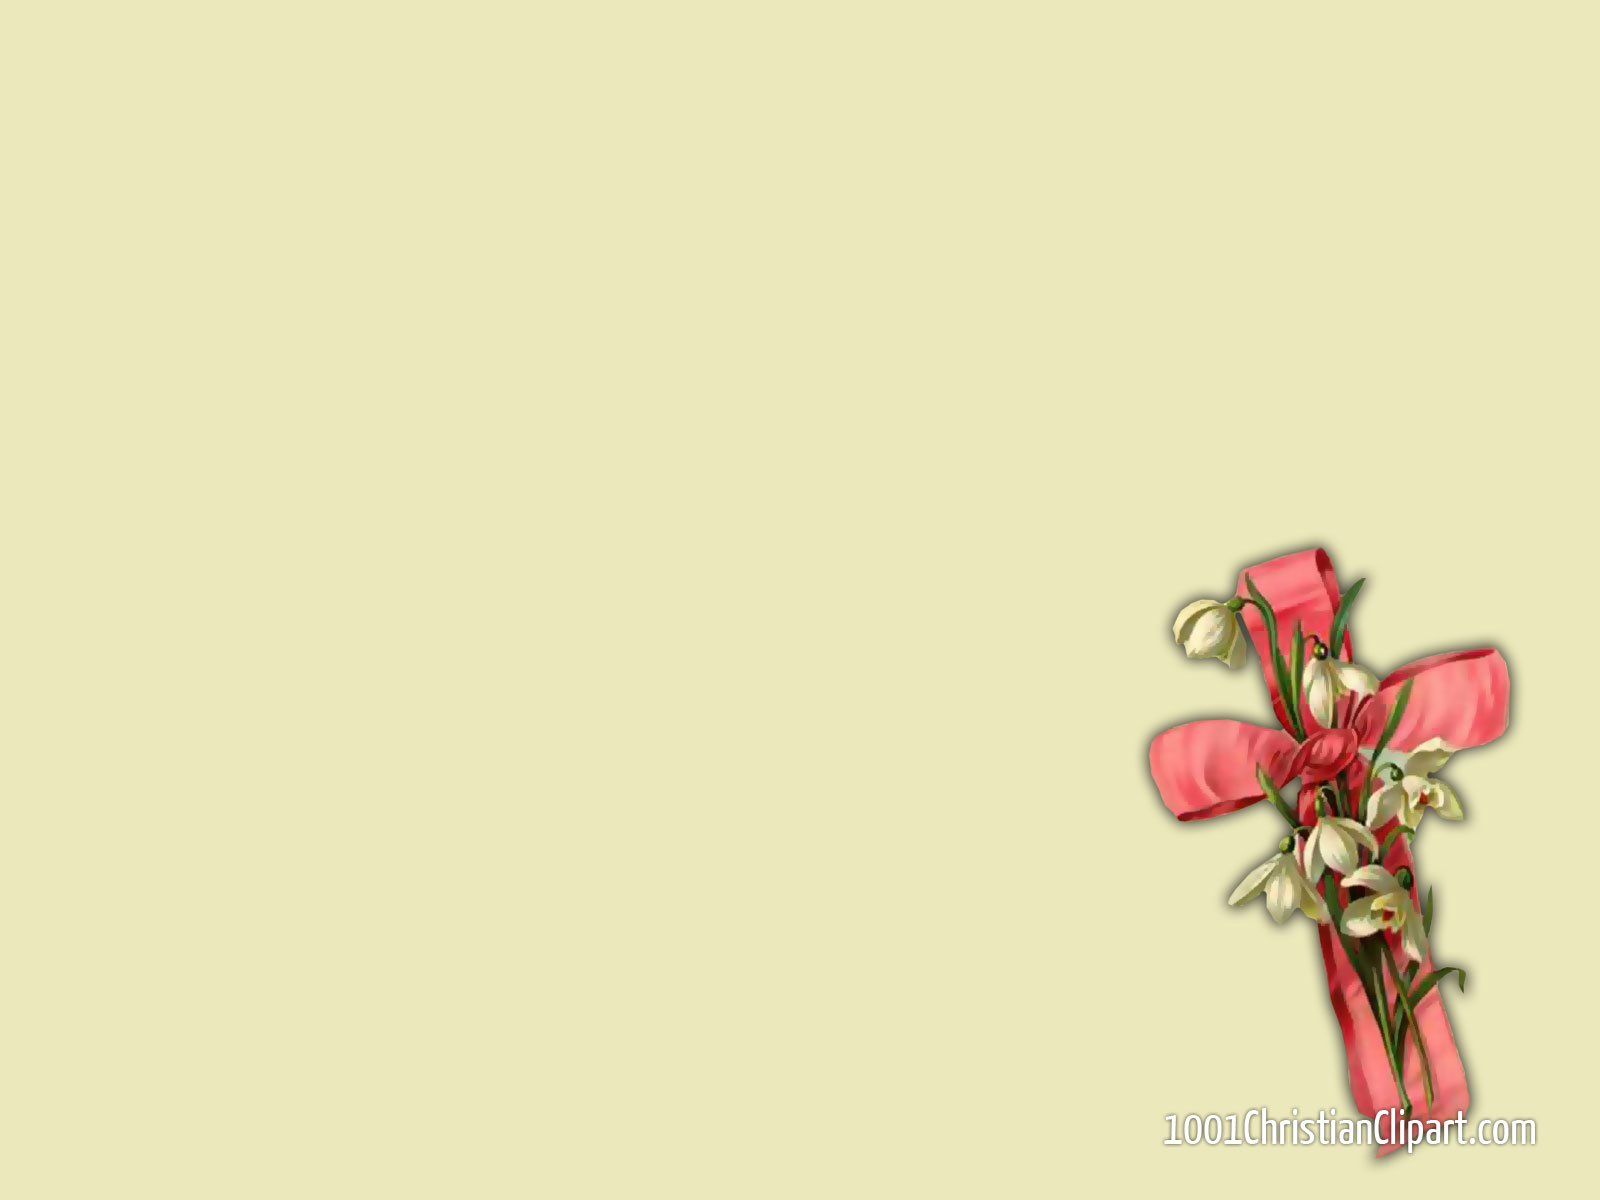 Pink Ribbon Cross Wallpaper, Christian Clipart, Https.